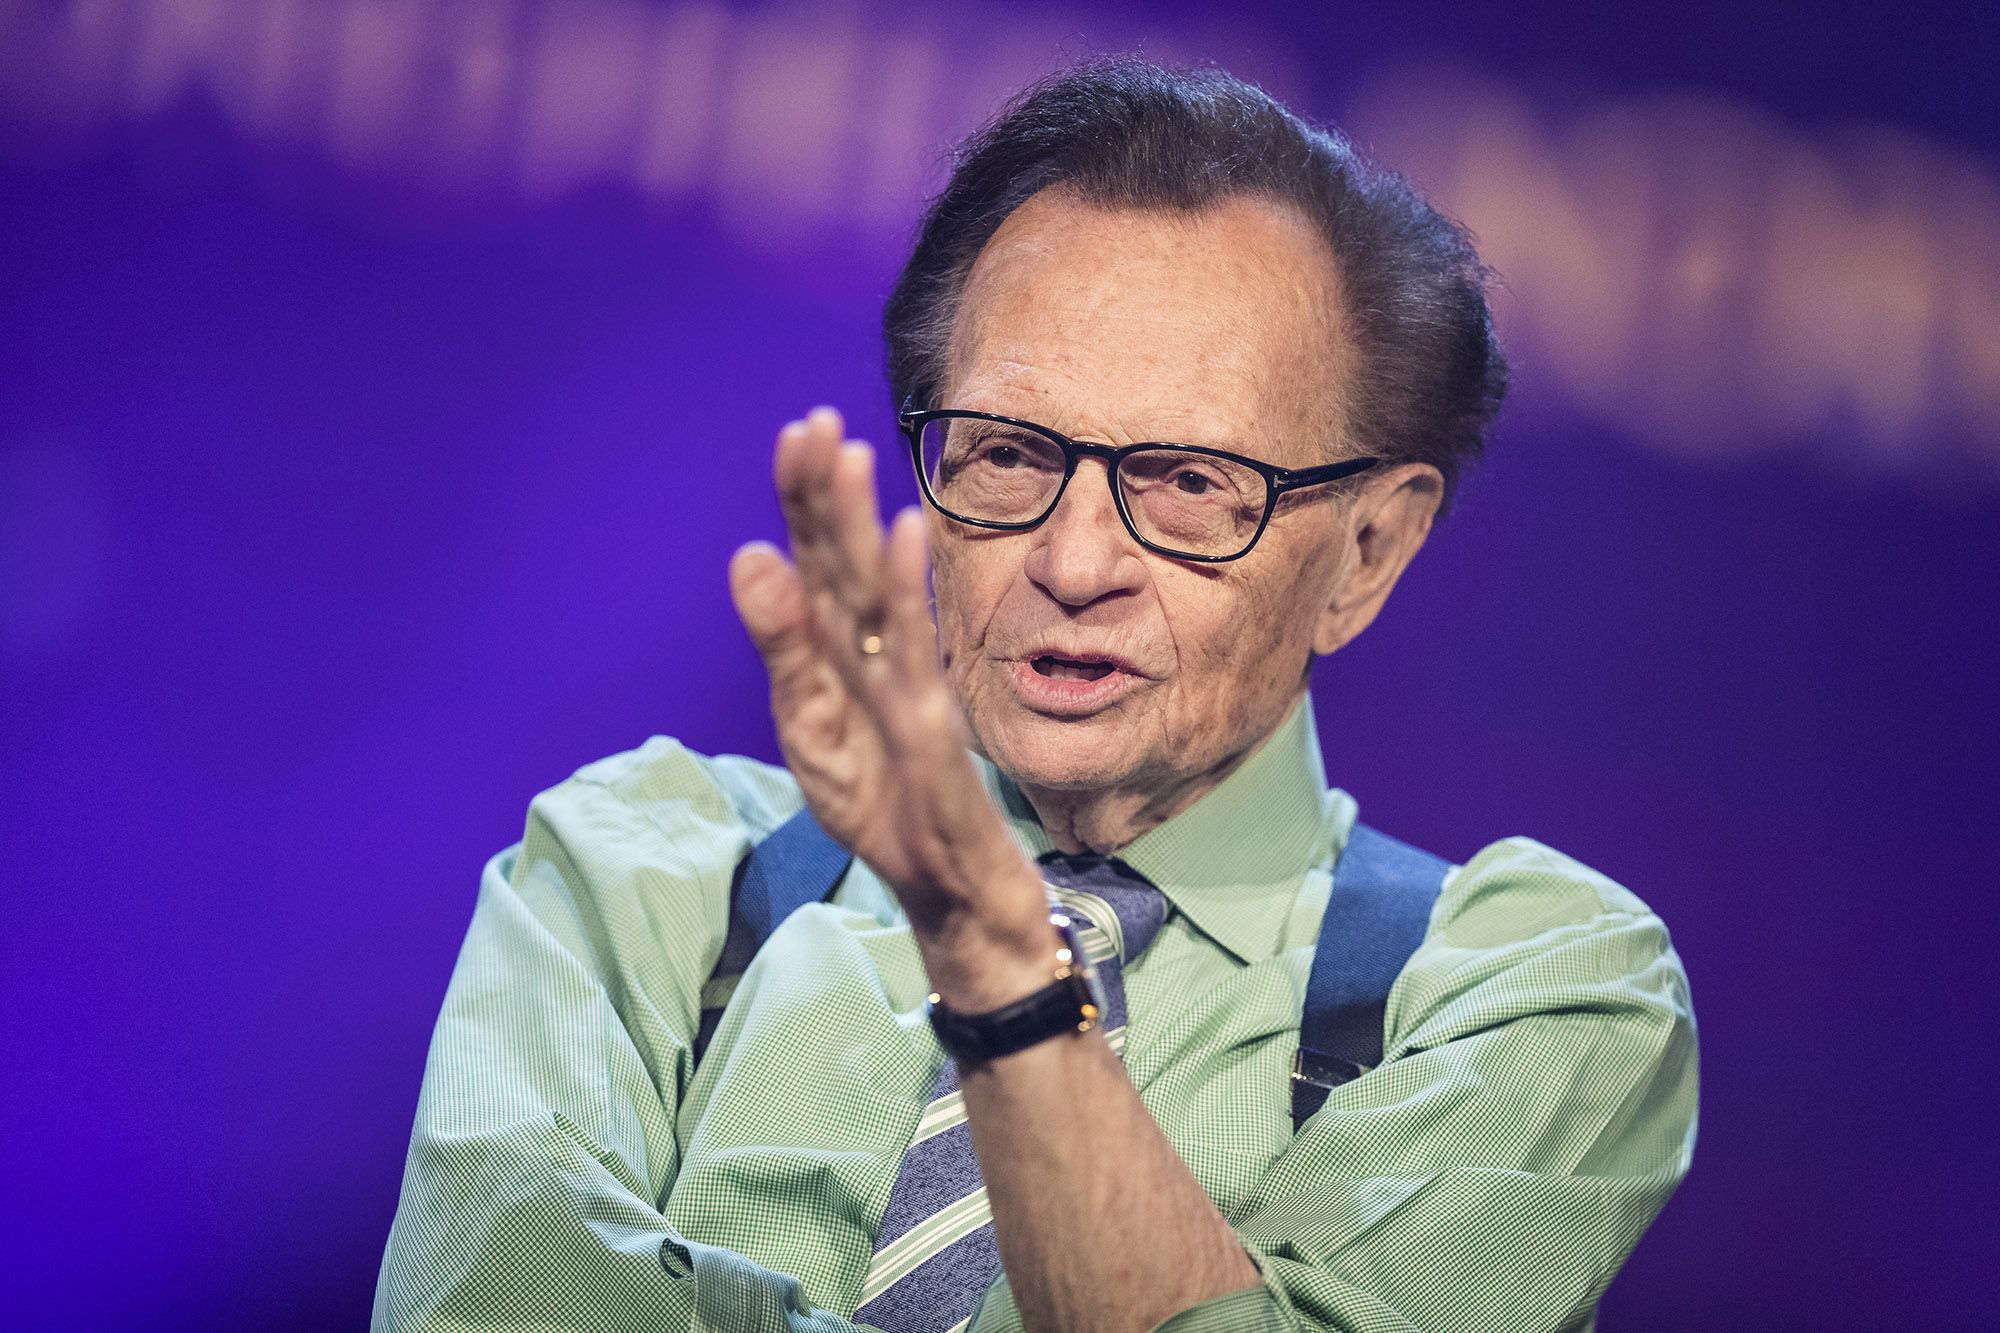 Broadcasting legend Larry King has died at 87